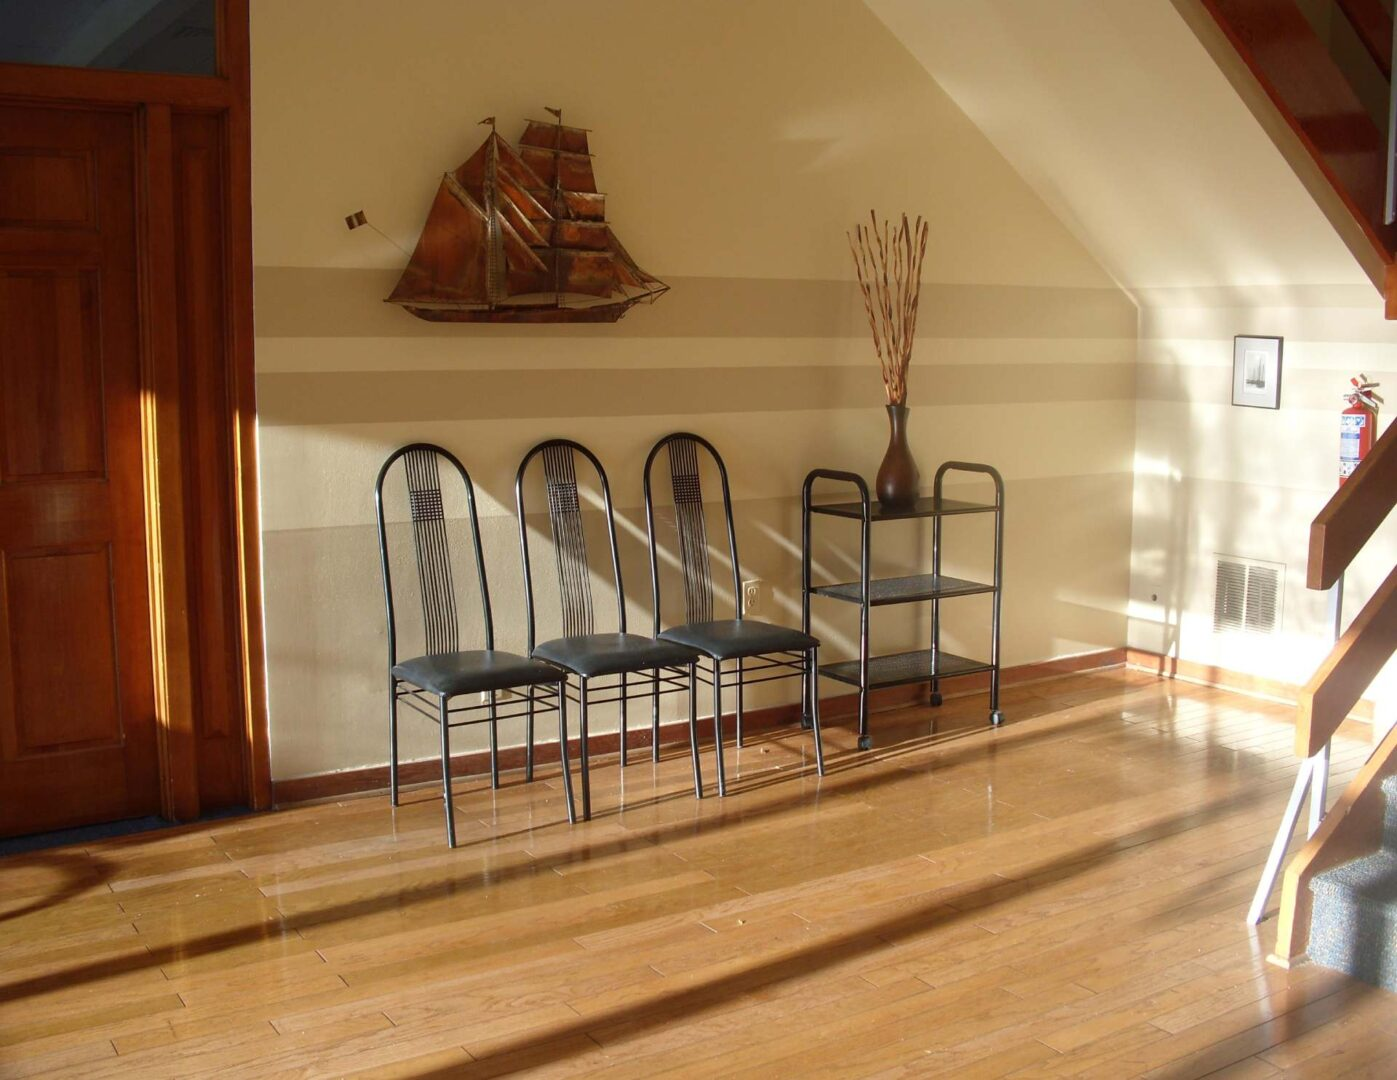 Sunlight streams in the bright, friendly lobby of office building 7 with hardwood floors and a professional shared conference room.